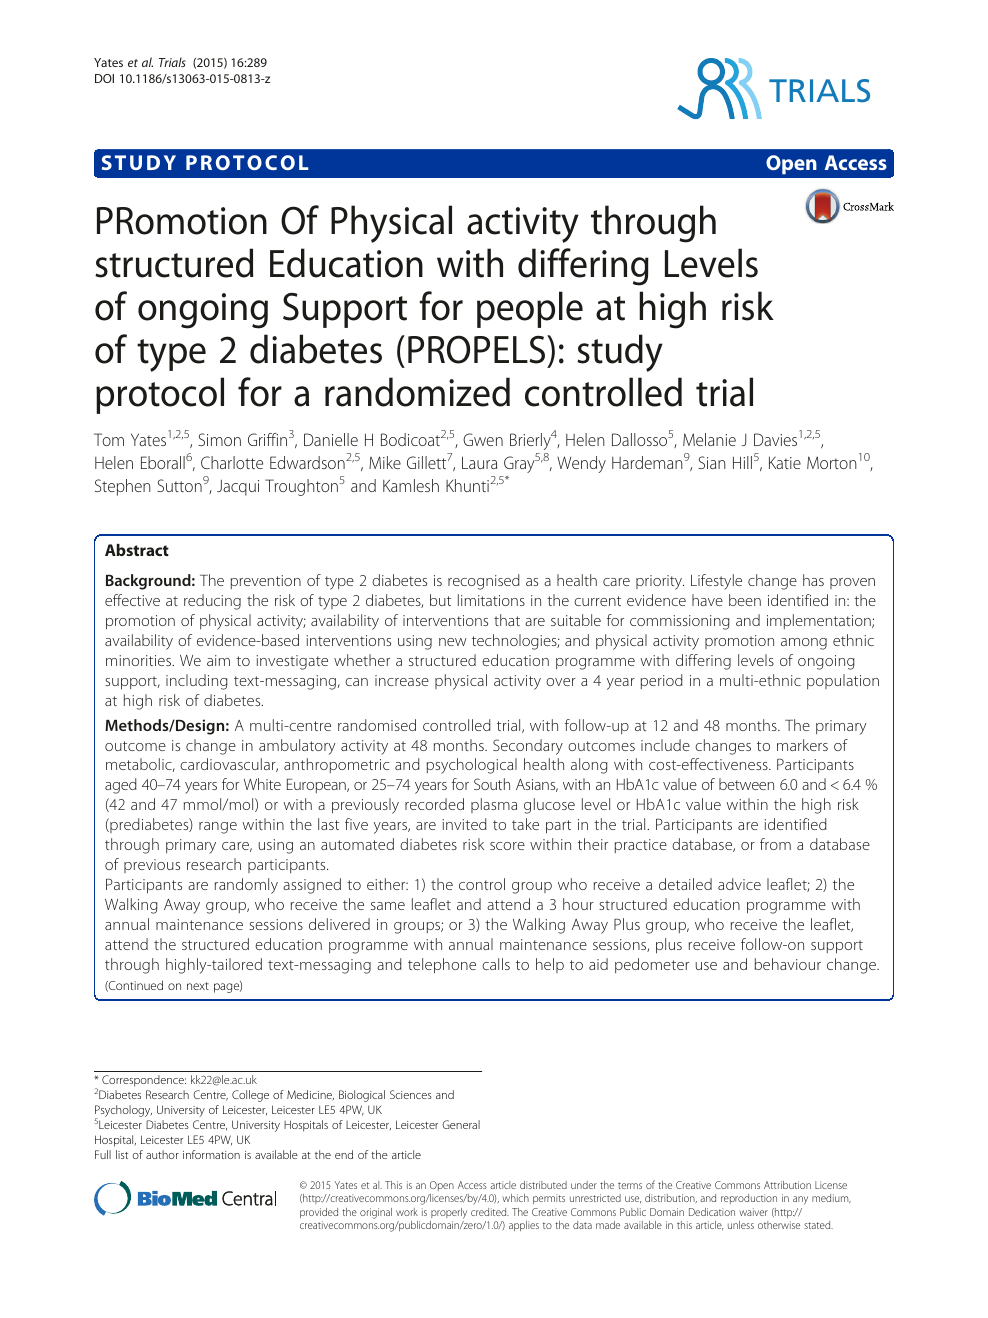 PRomotion Of Physical activity through structured Education